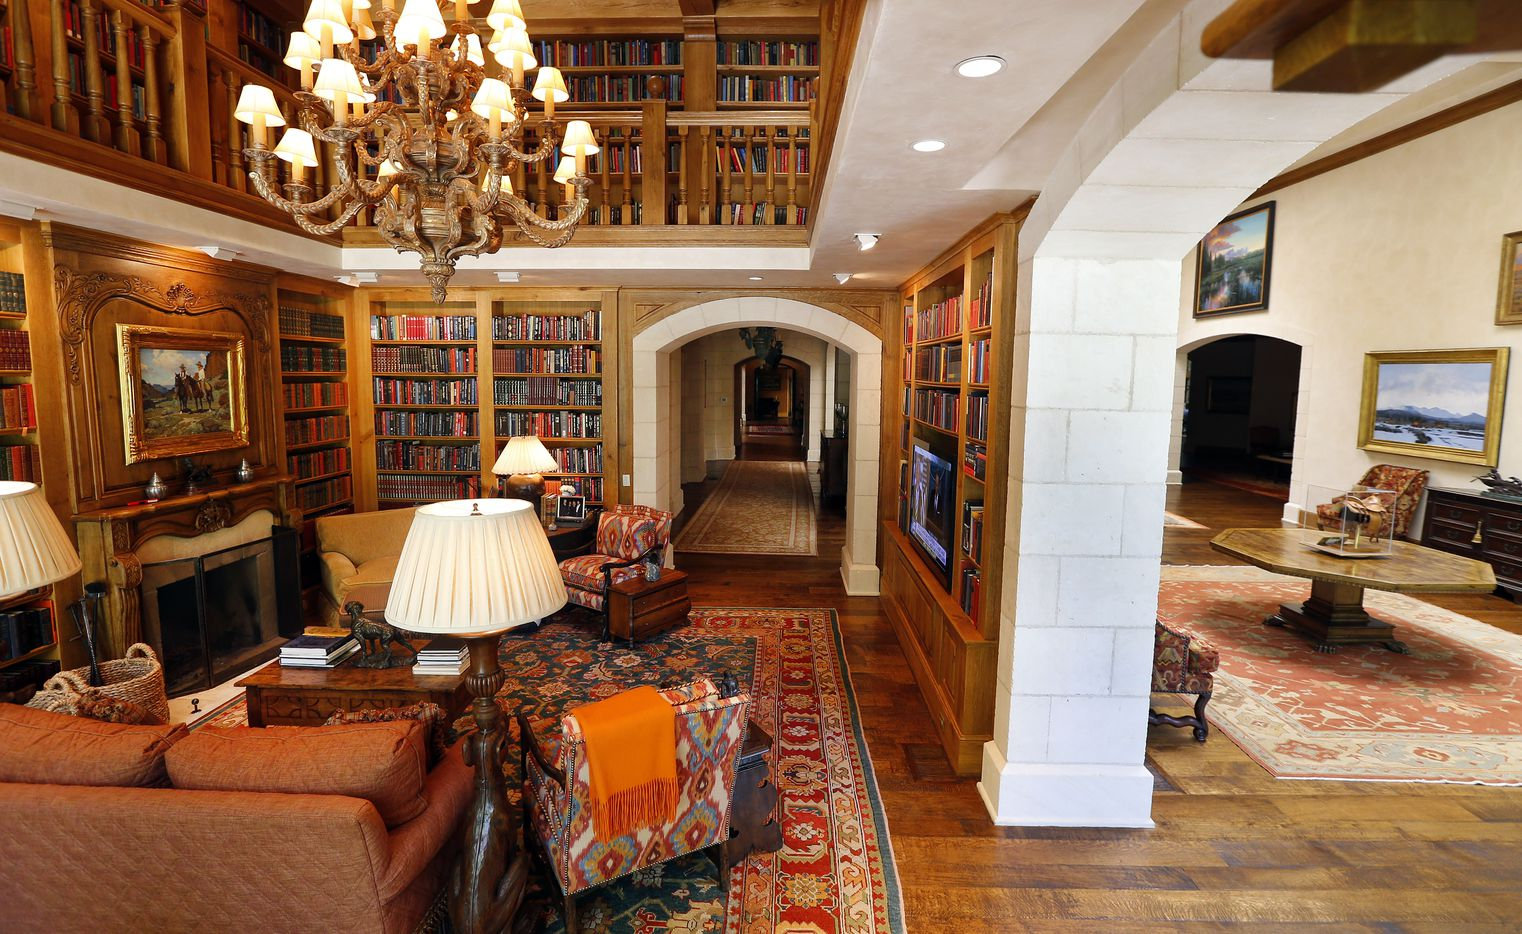 The Library (left) and art gallery are part of The Lodge, the residence of businessman T. Boone Pickens on his Mesa Vista Ranch.